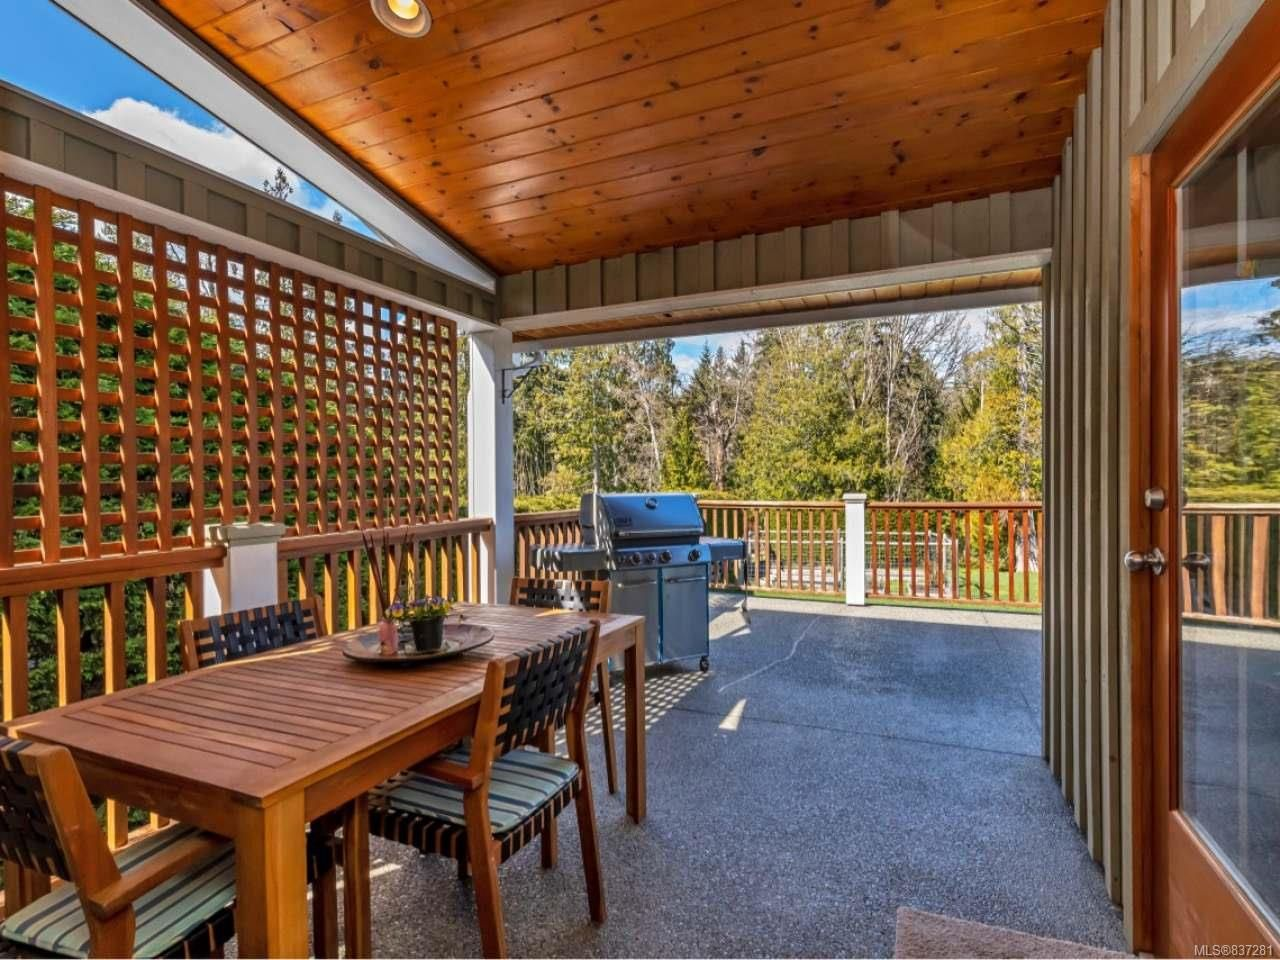 Photo 40: Photos: 925 Lilmac Rd in MILL BAY: ML Mill Bay House for sale (Malahat & Area)  : MLS®# 837281